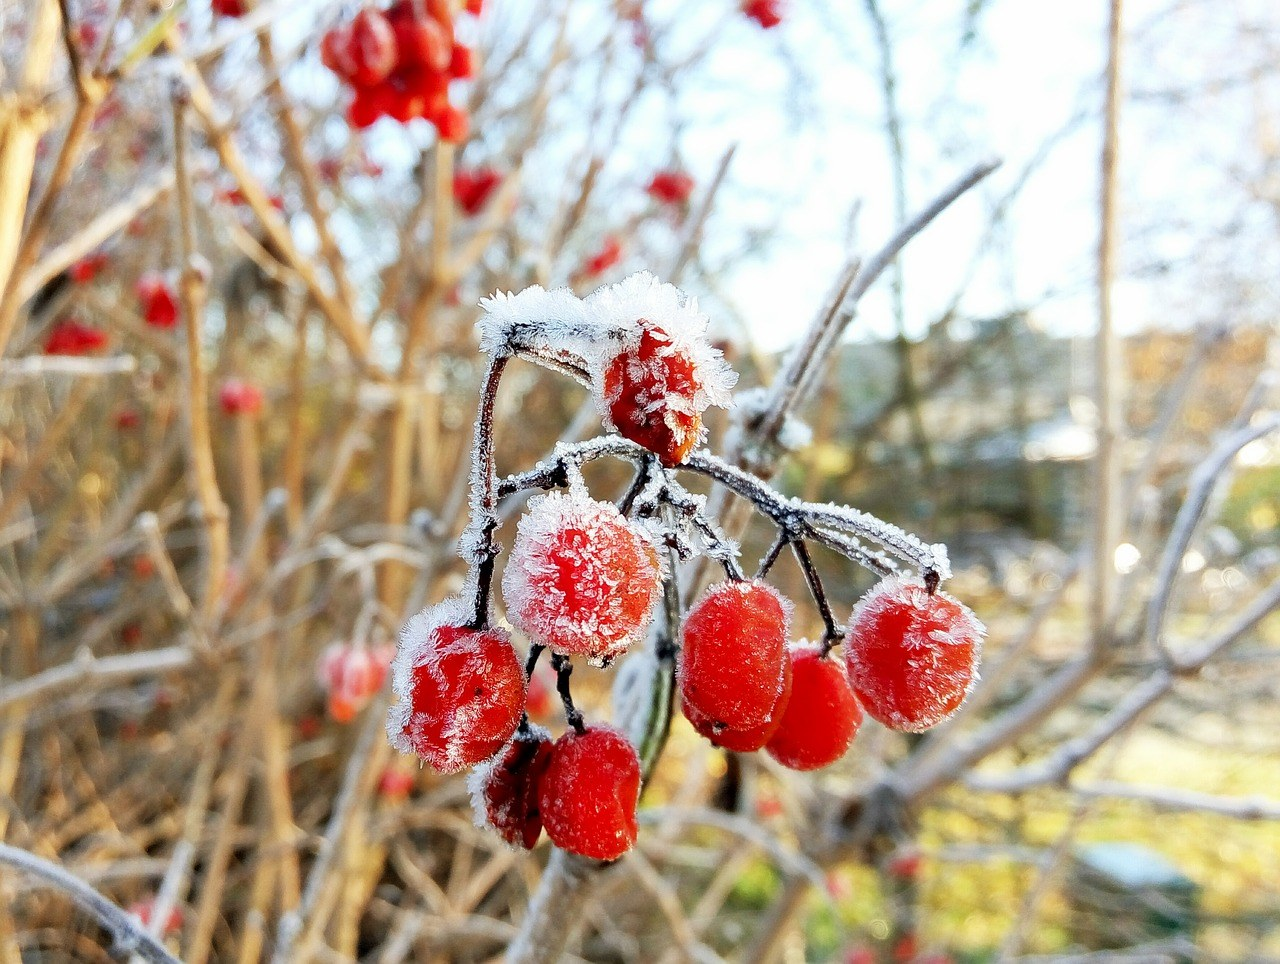 How To Protect Fruit Trees From Frost - A Green Hand